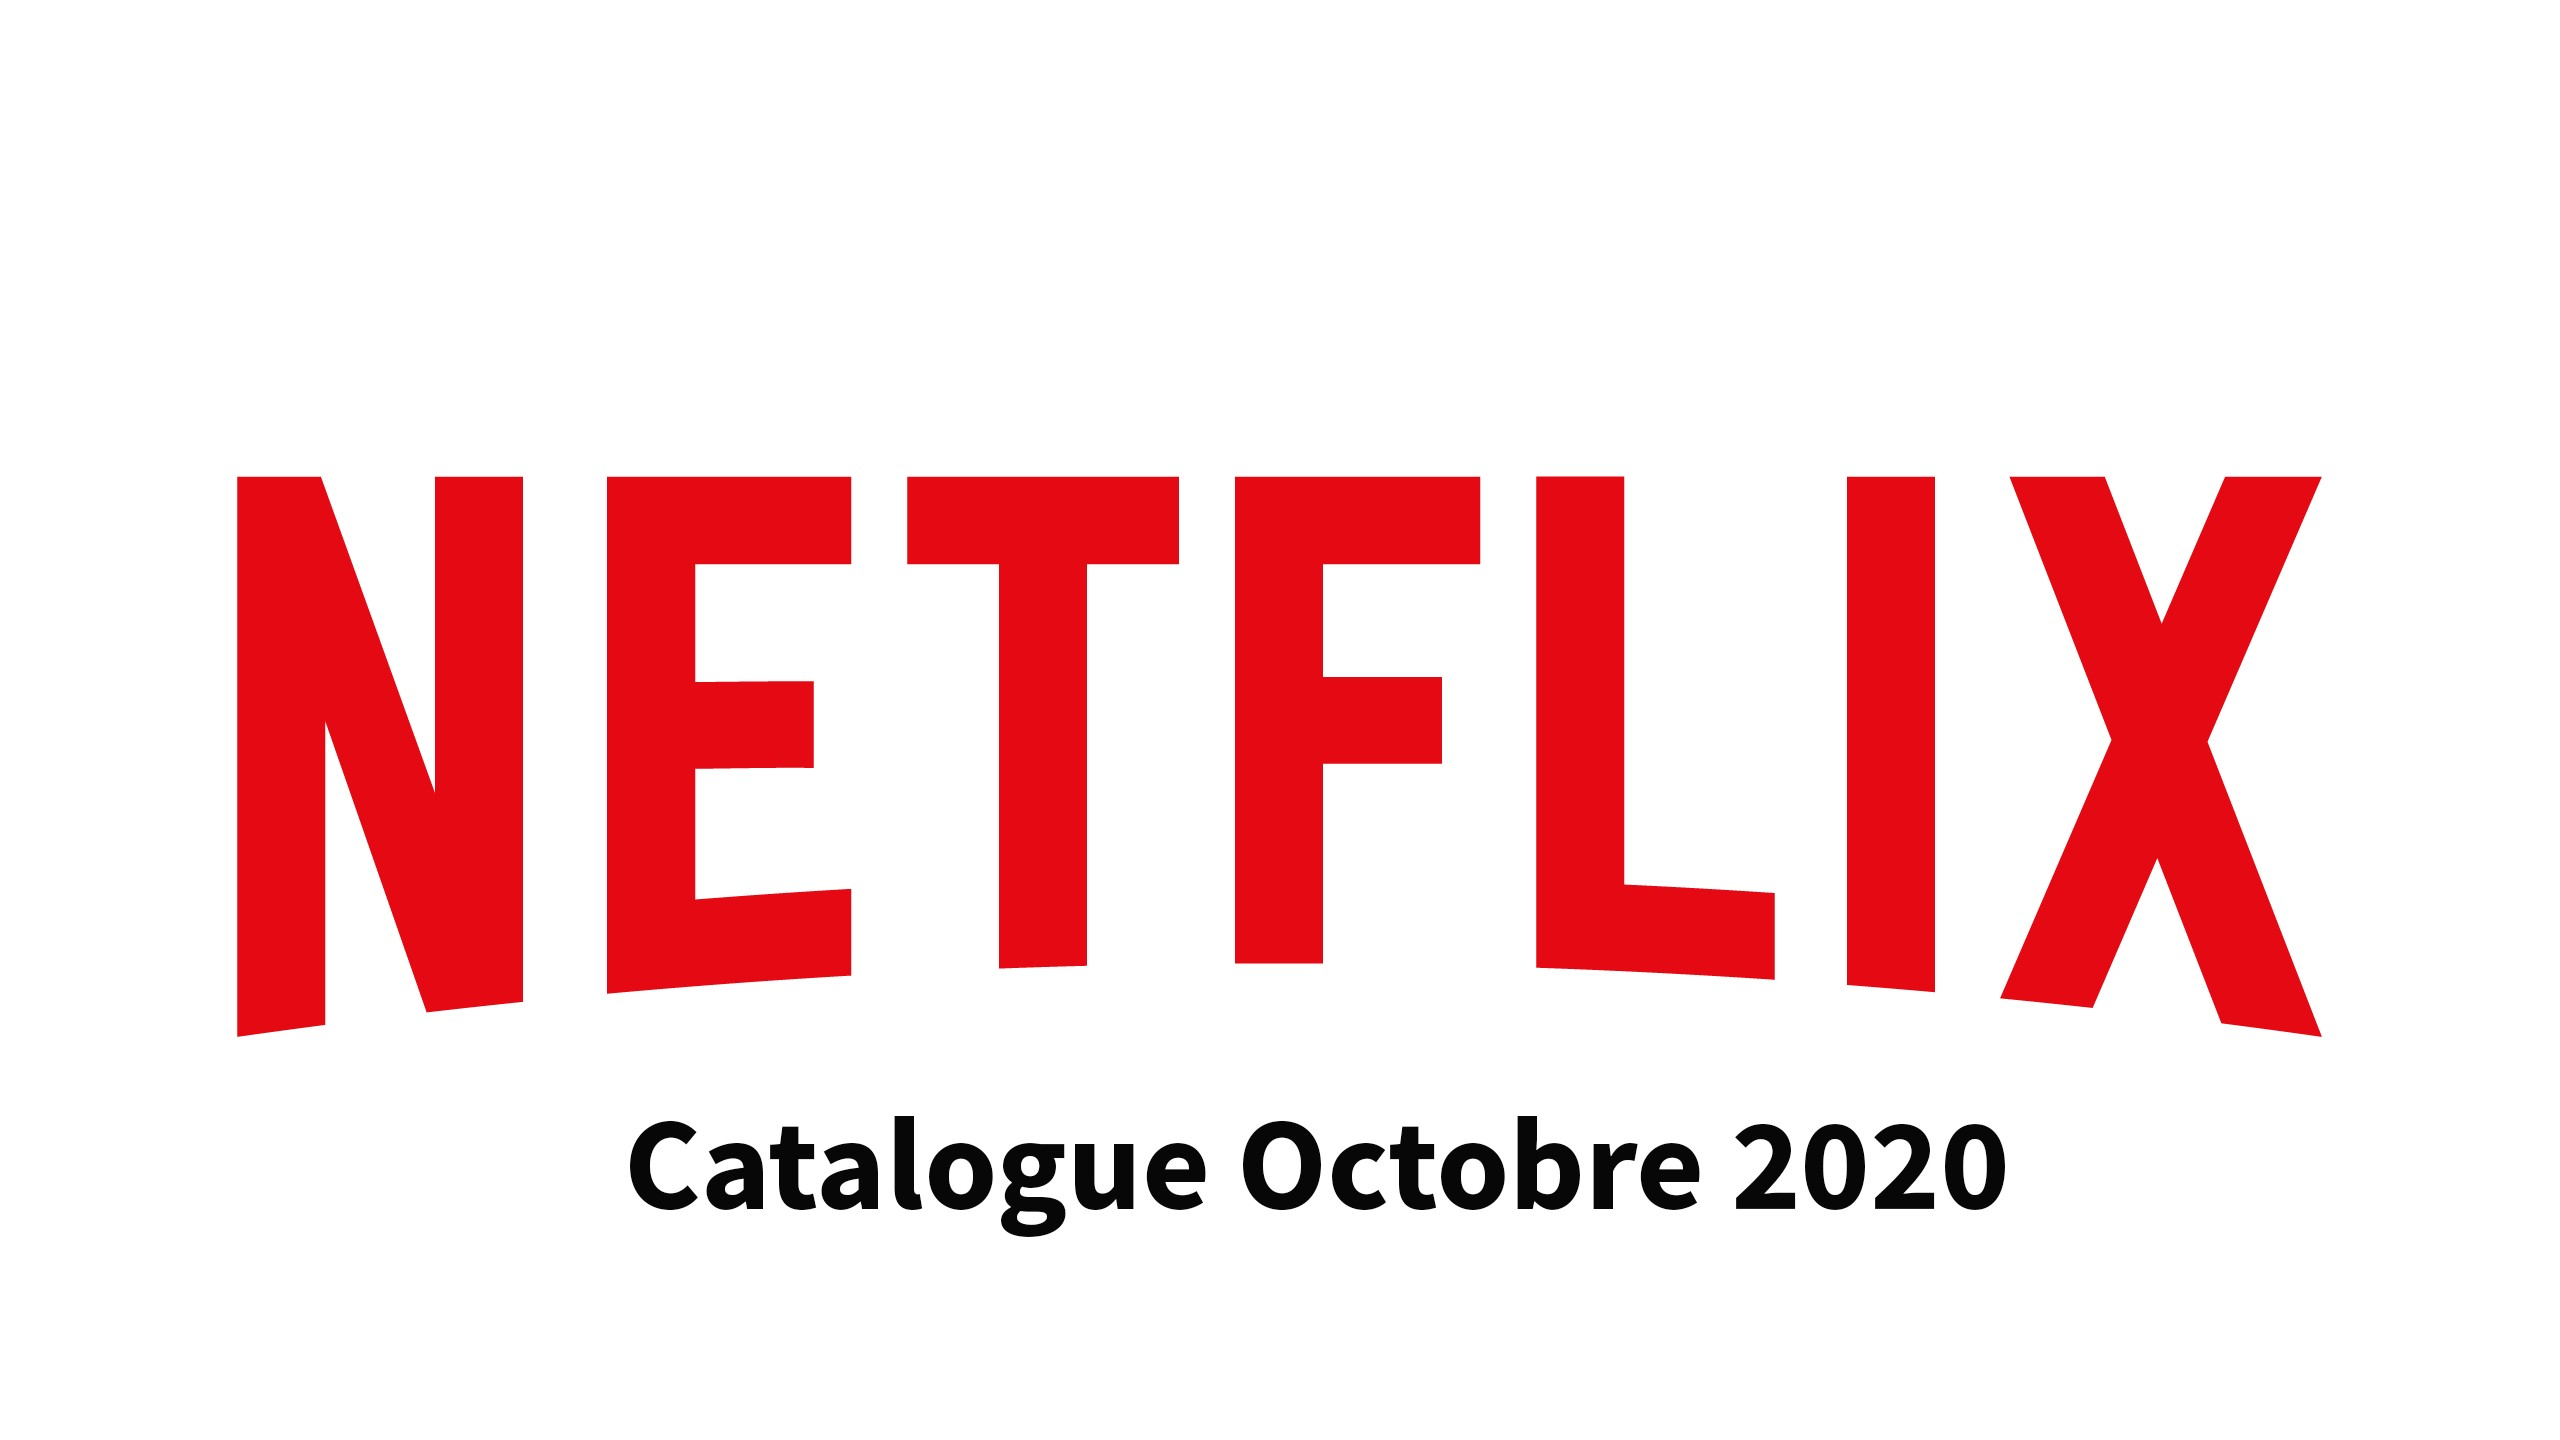 Netflix Catalogue d'Octobre 2020!